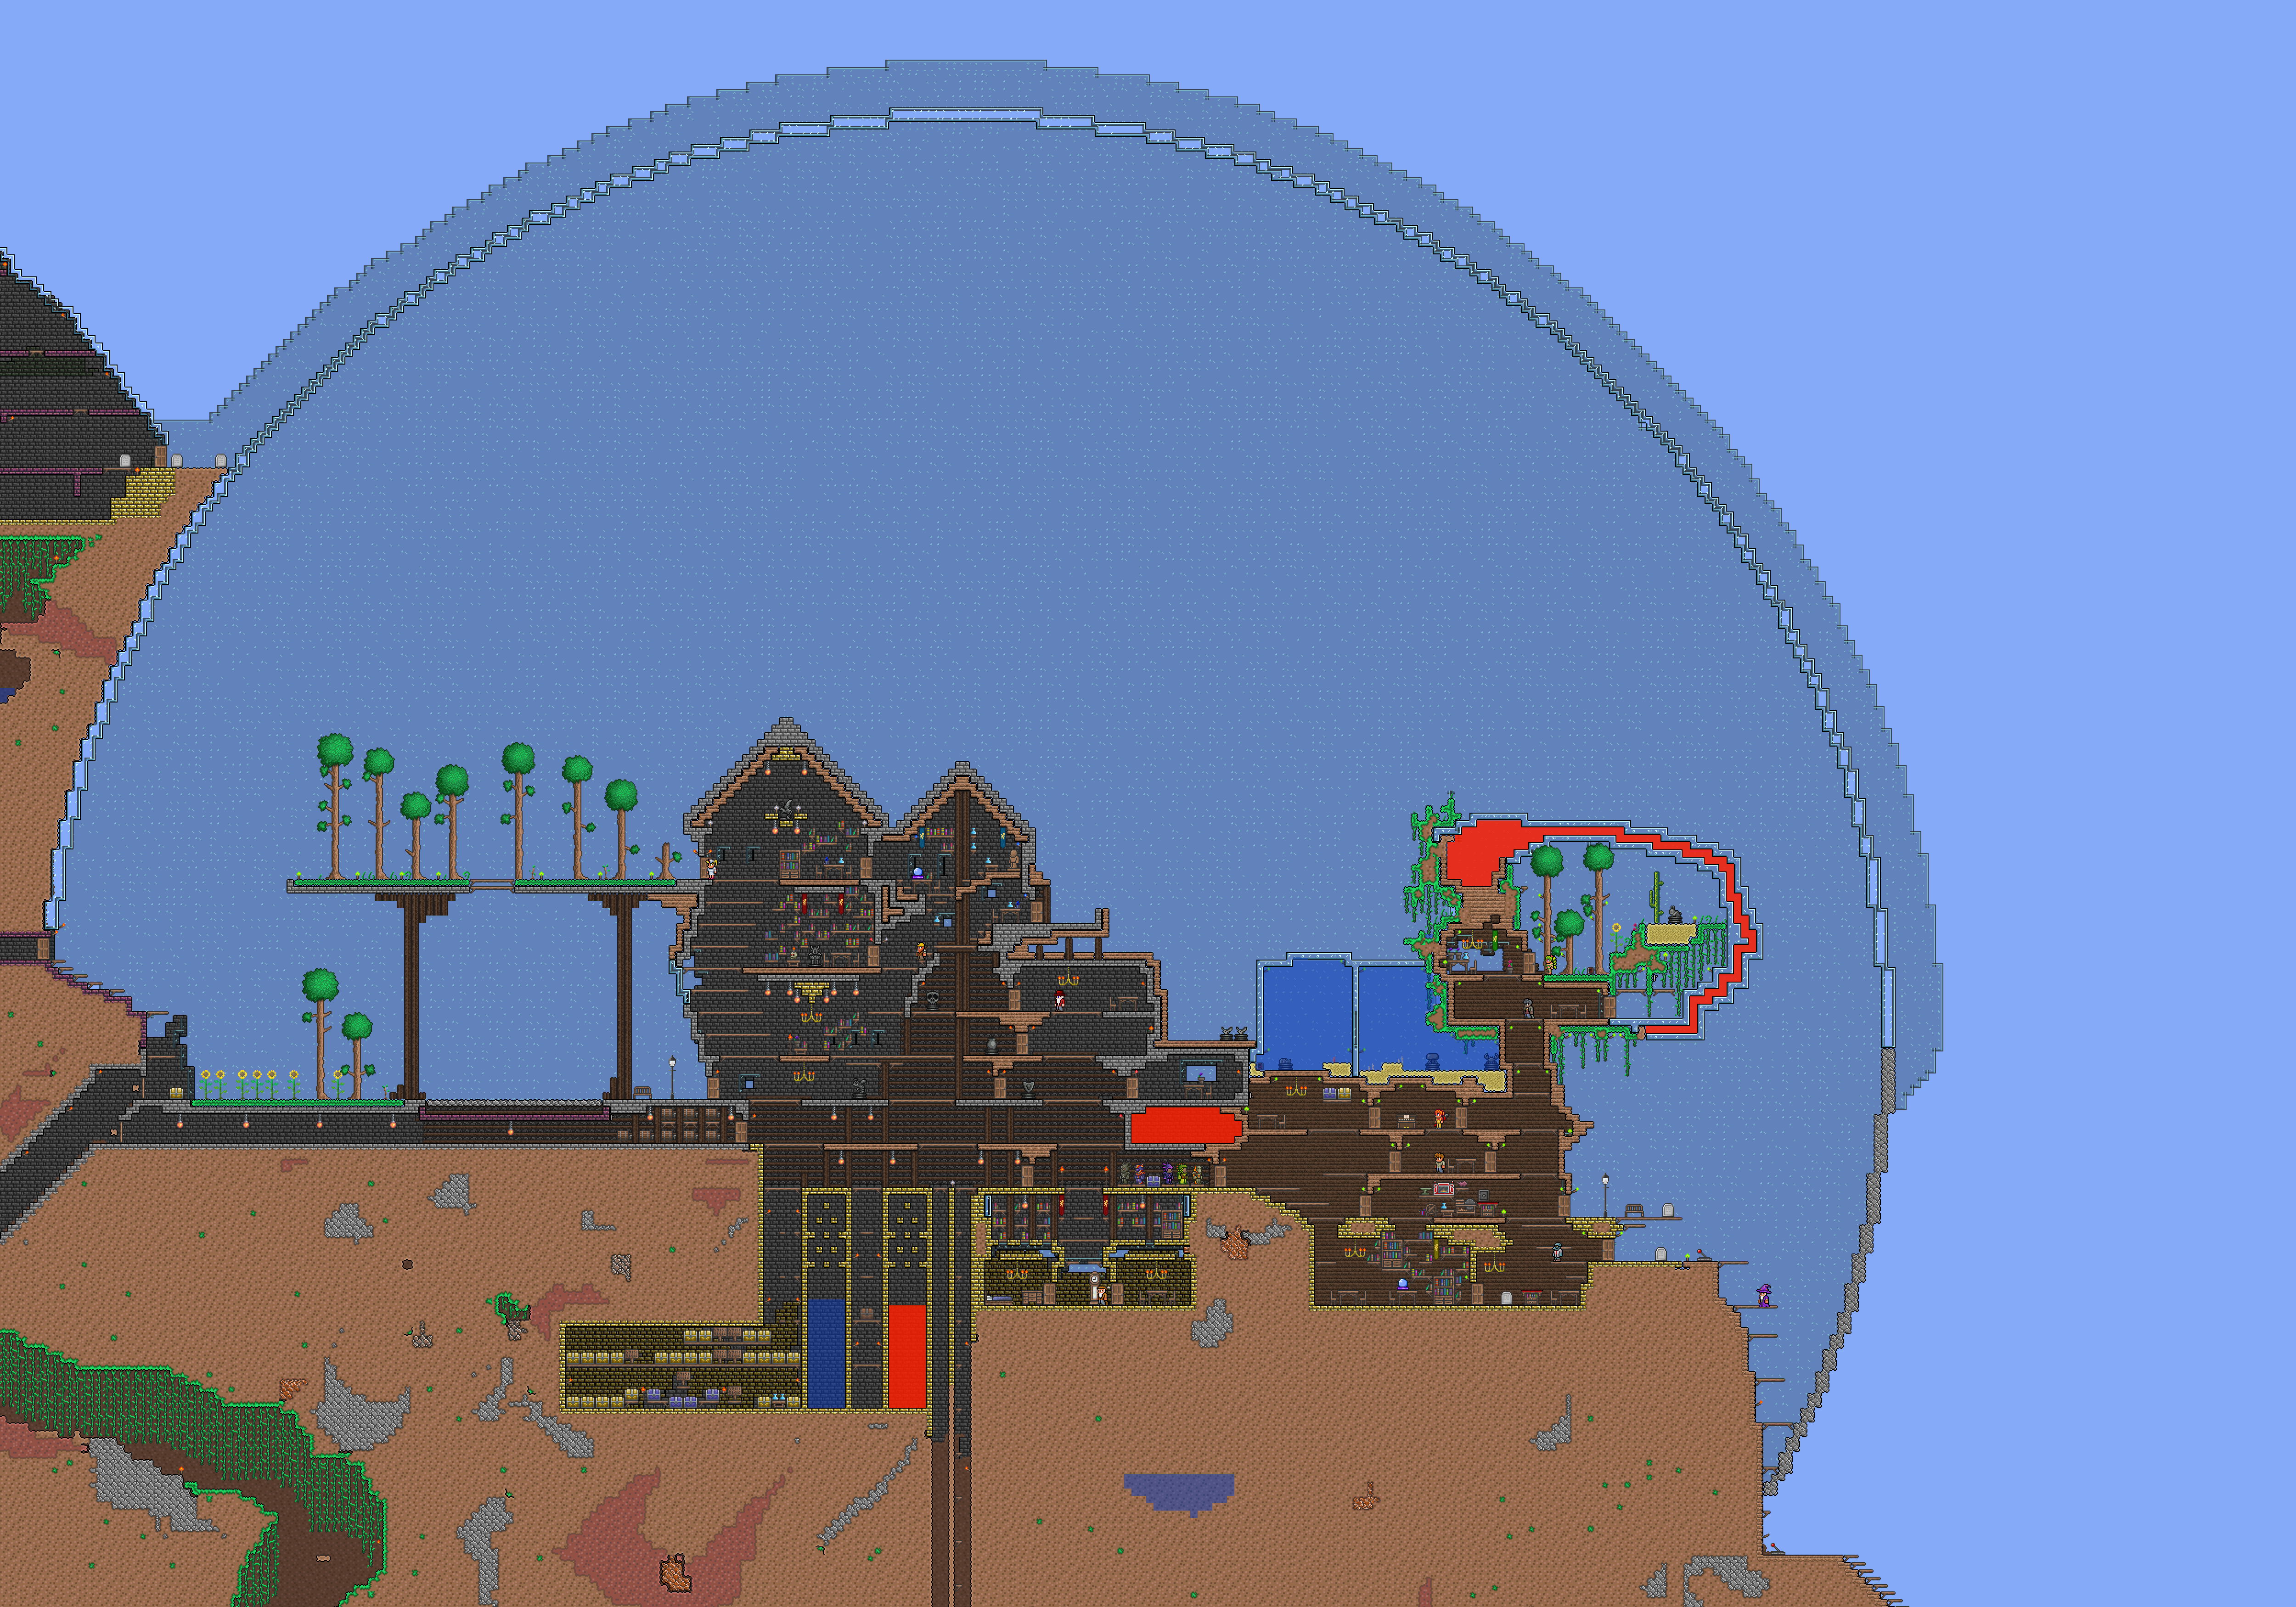 Terraria House Glass Orb 5000 X 3500 Pixels By 0odaredevilo0 On Deviantart